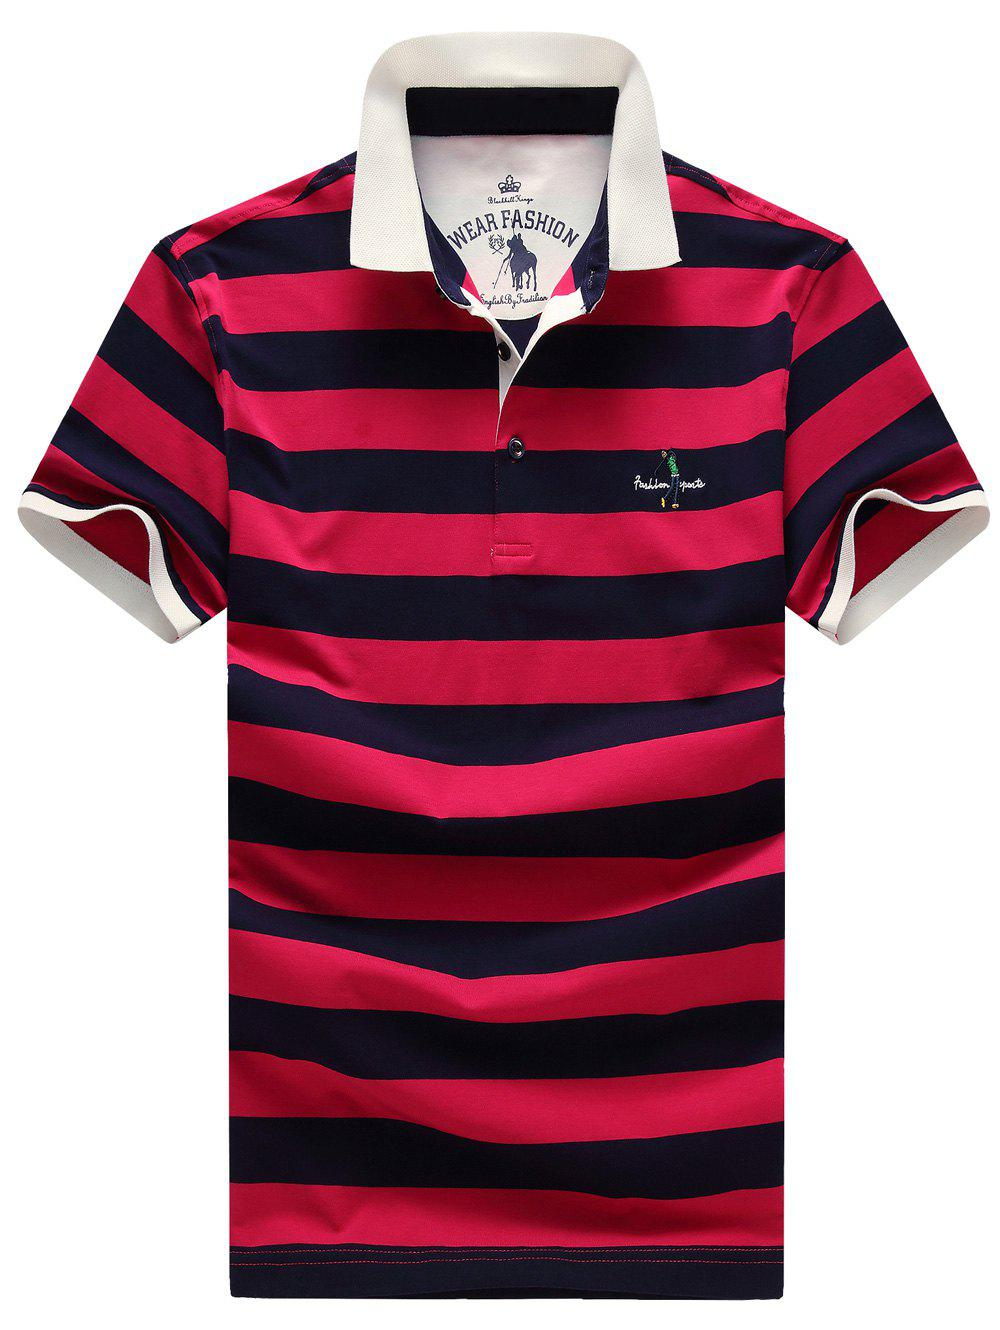 Casual Men's Plus Size Turn-Down Collar Color Block Striped Short Sleeve Polo T-Shirt